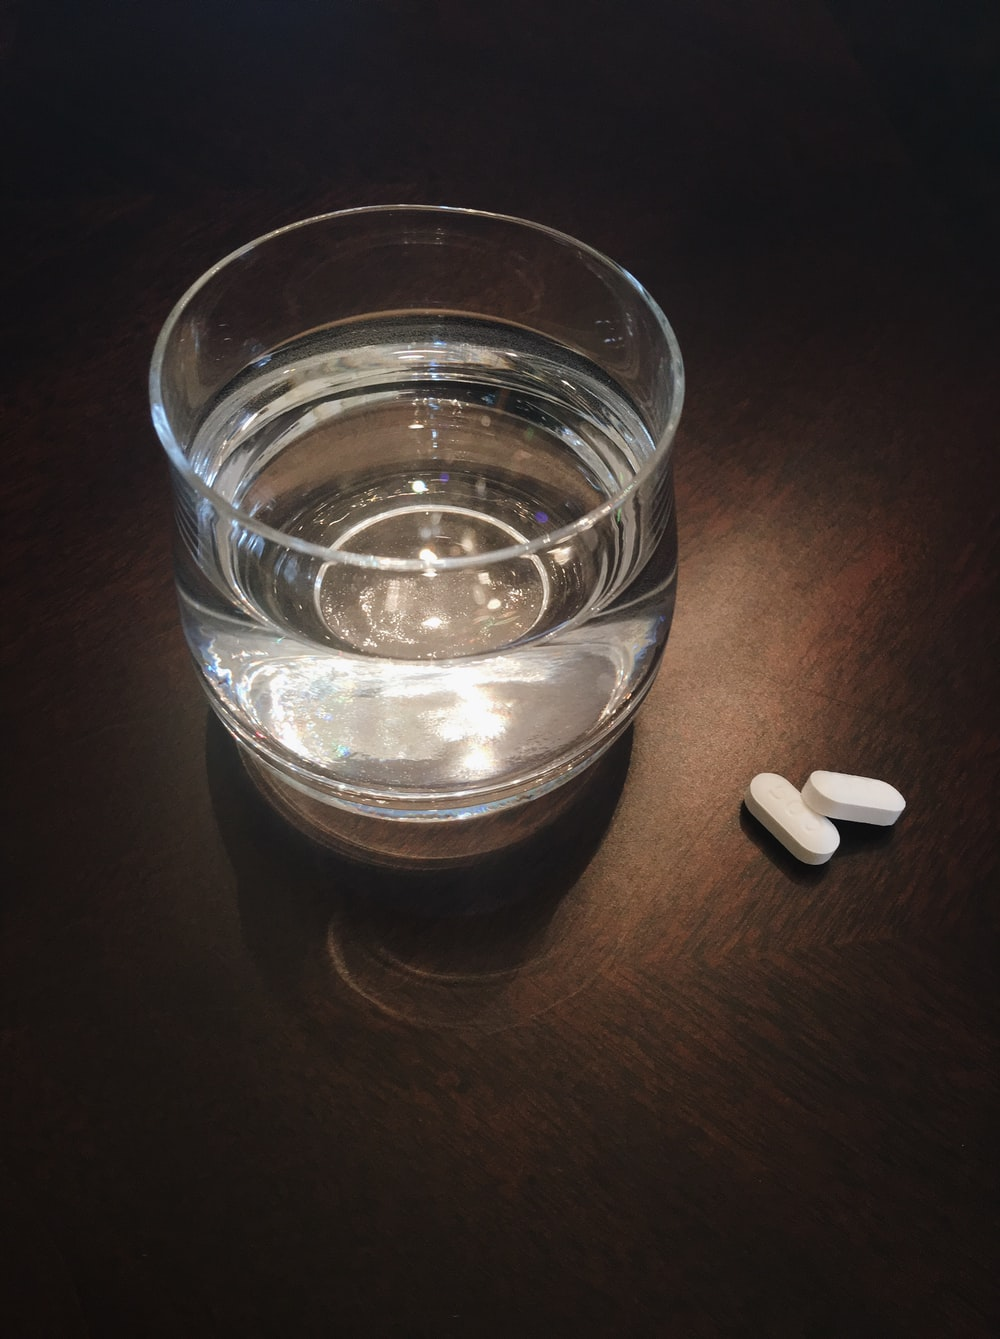 two oval white medication tablets on brown surface